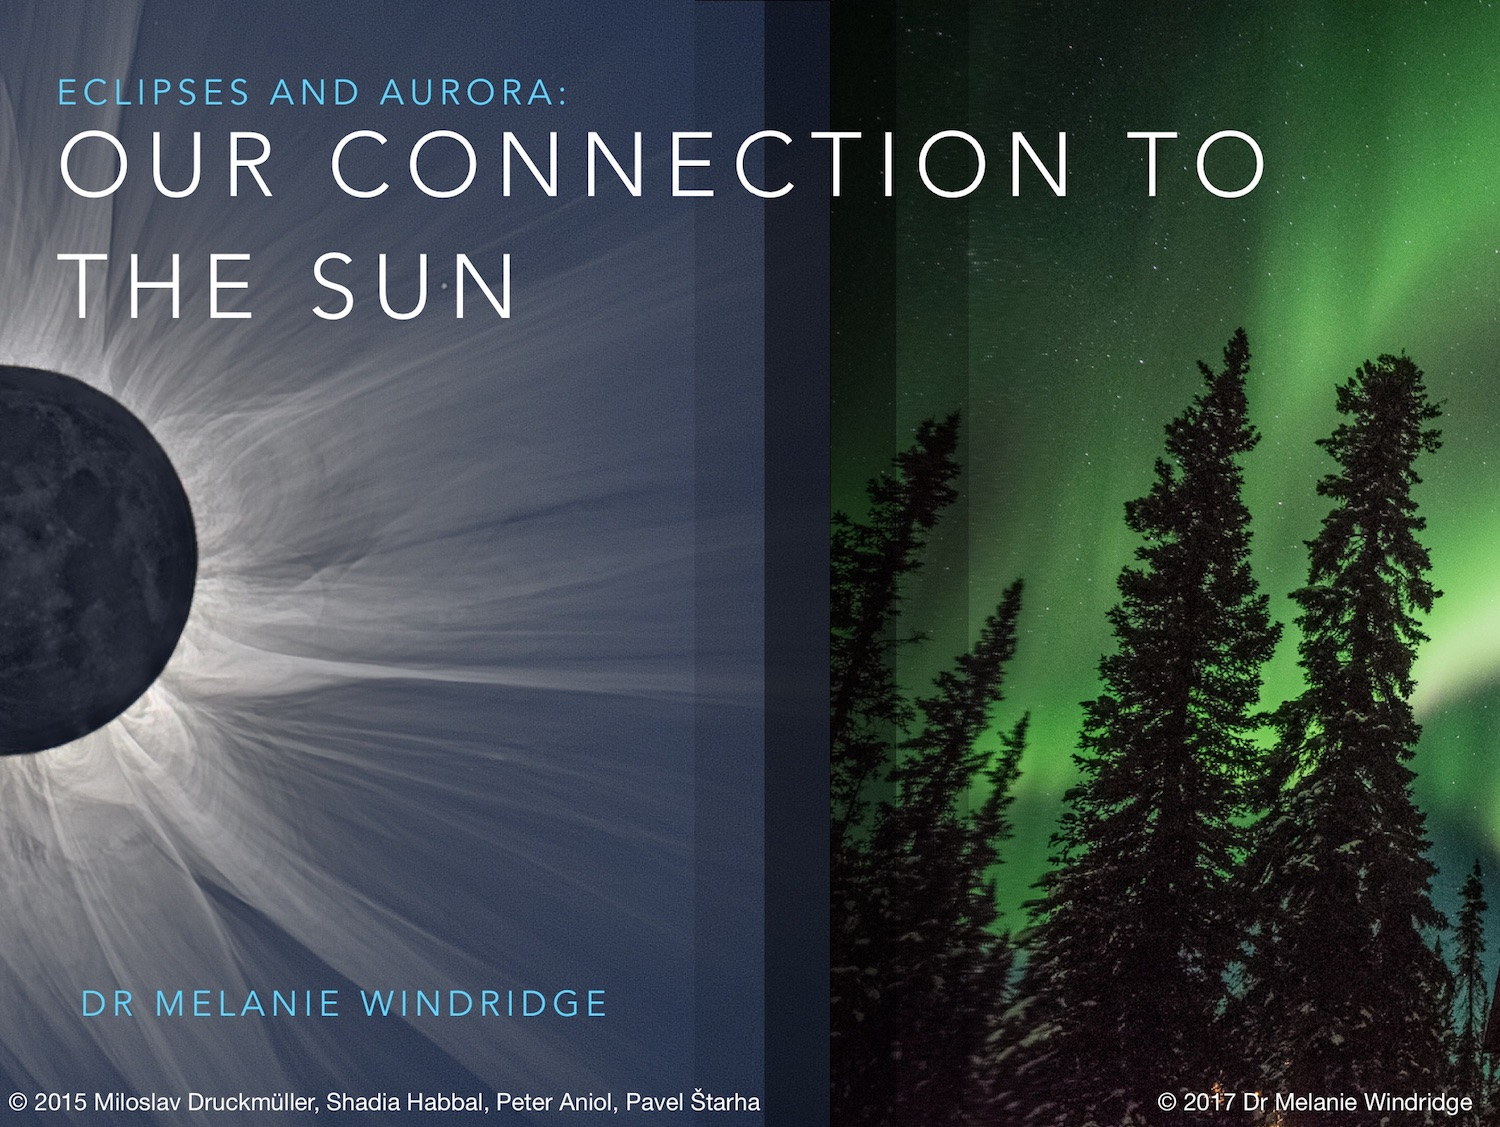 Eclipses and Aurora: Our Connection to the Sun